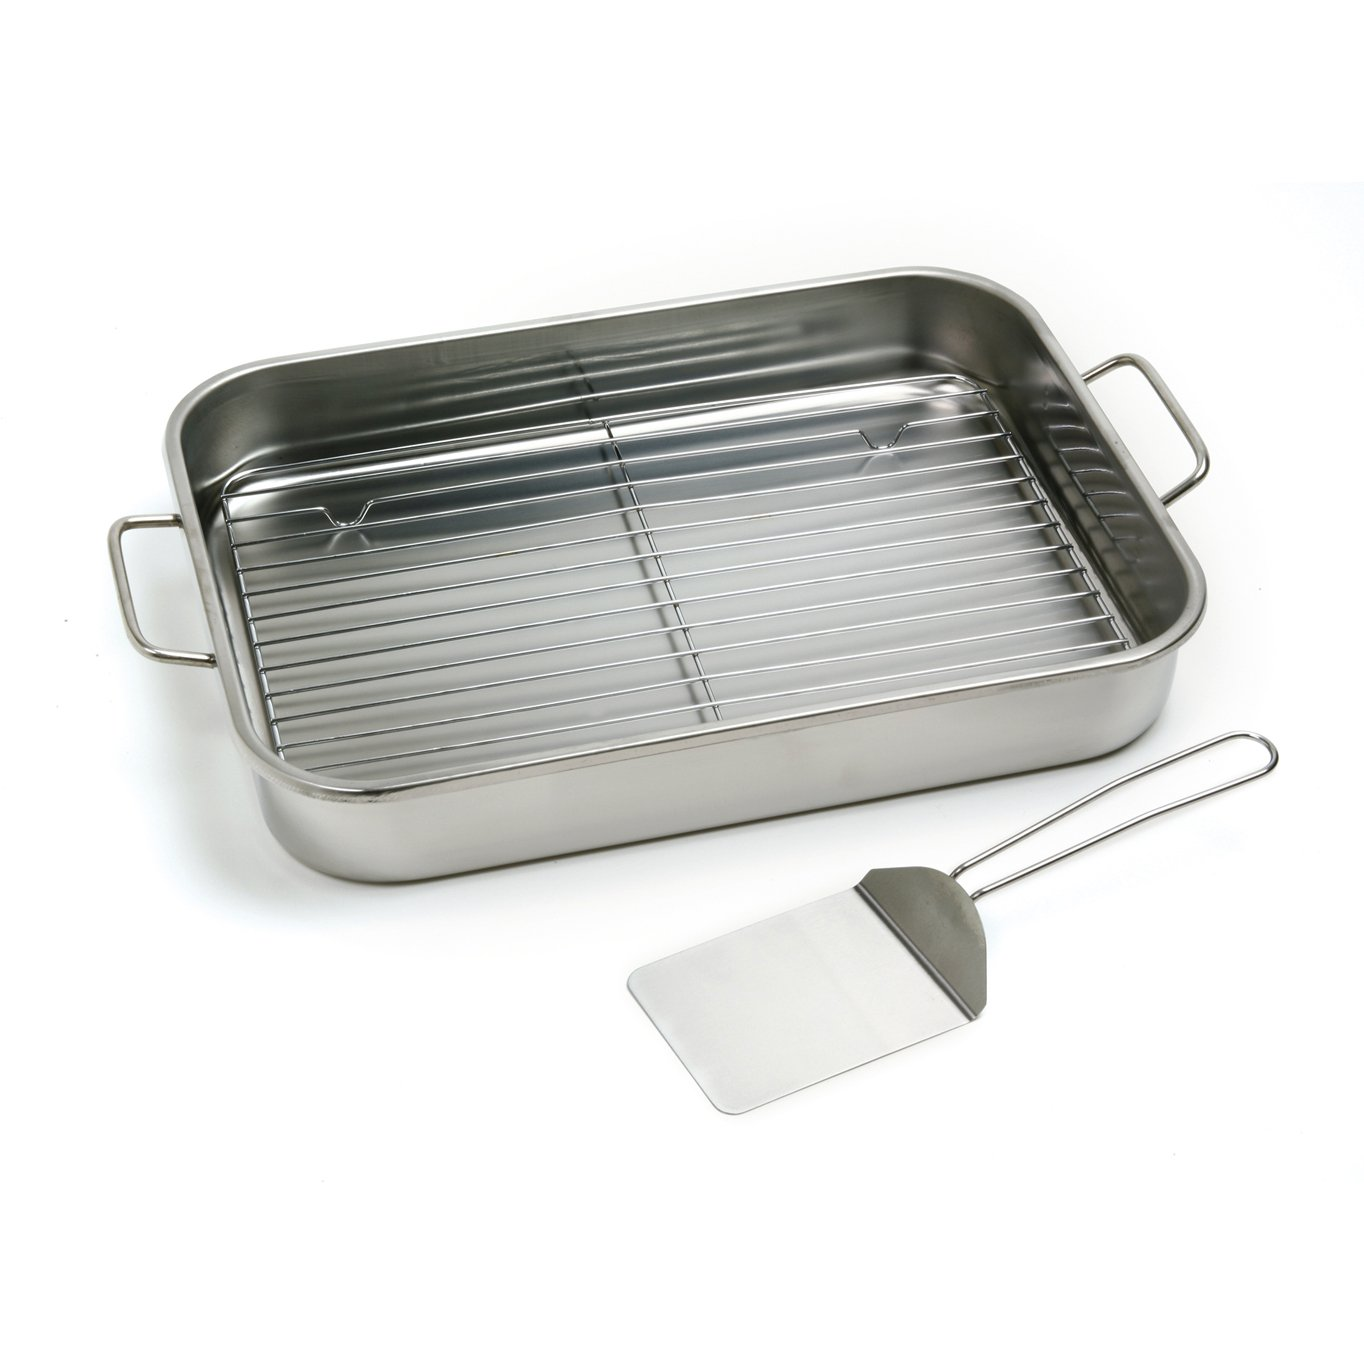 Norpro 12 by 16 Inch Stainless Steel Roast Lasagna Pan by Norpro